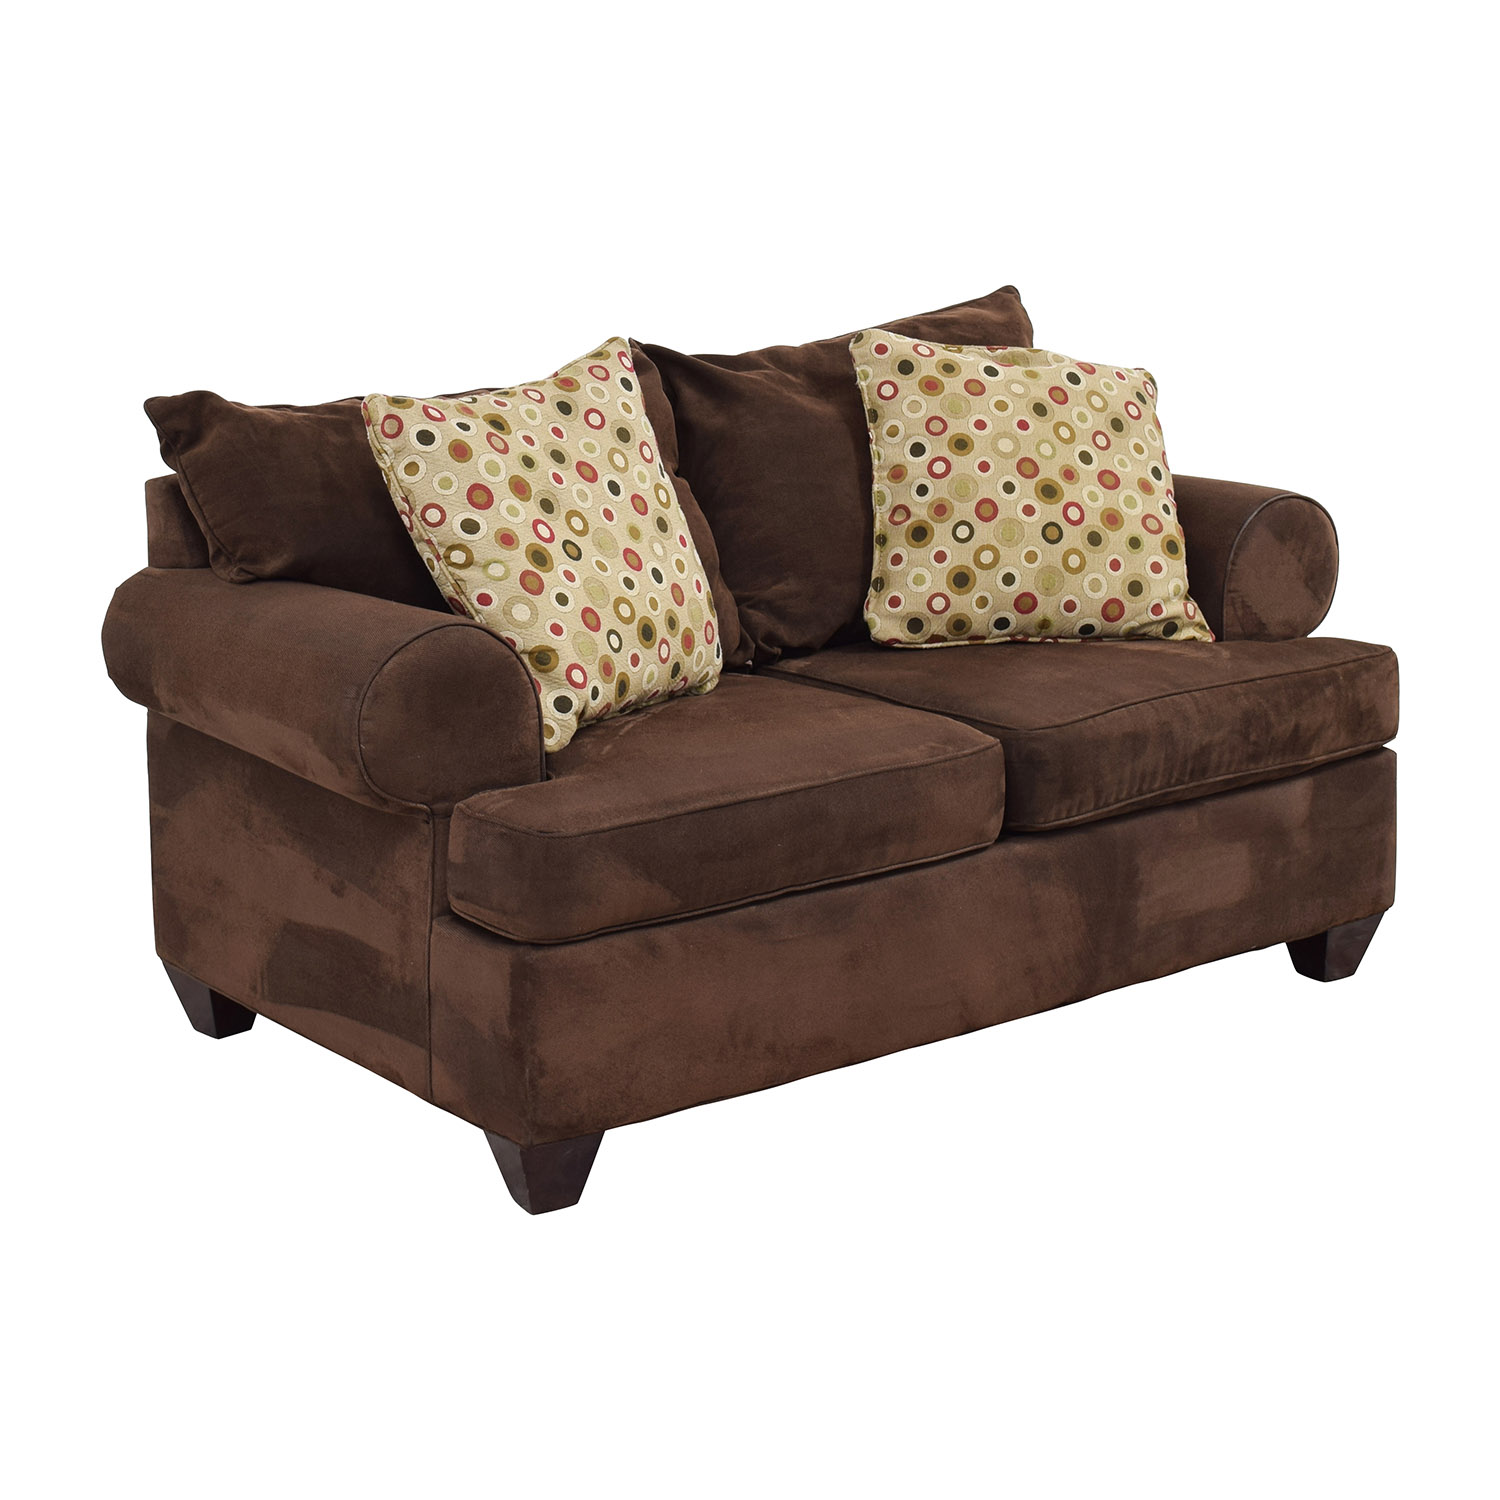 Raymour and Flanigan Raymour & Flanigan Brown Two-Cushion Loveseat coupon